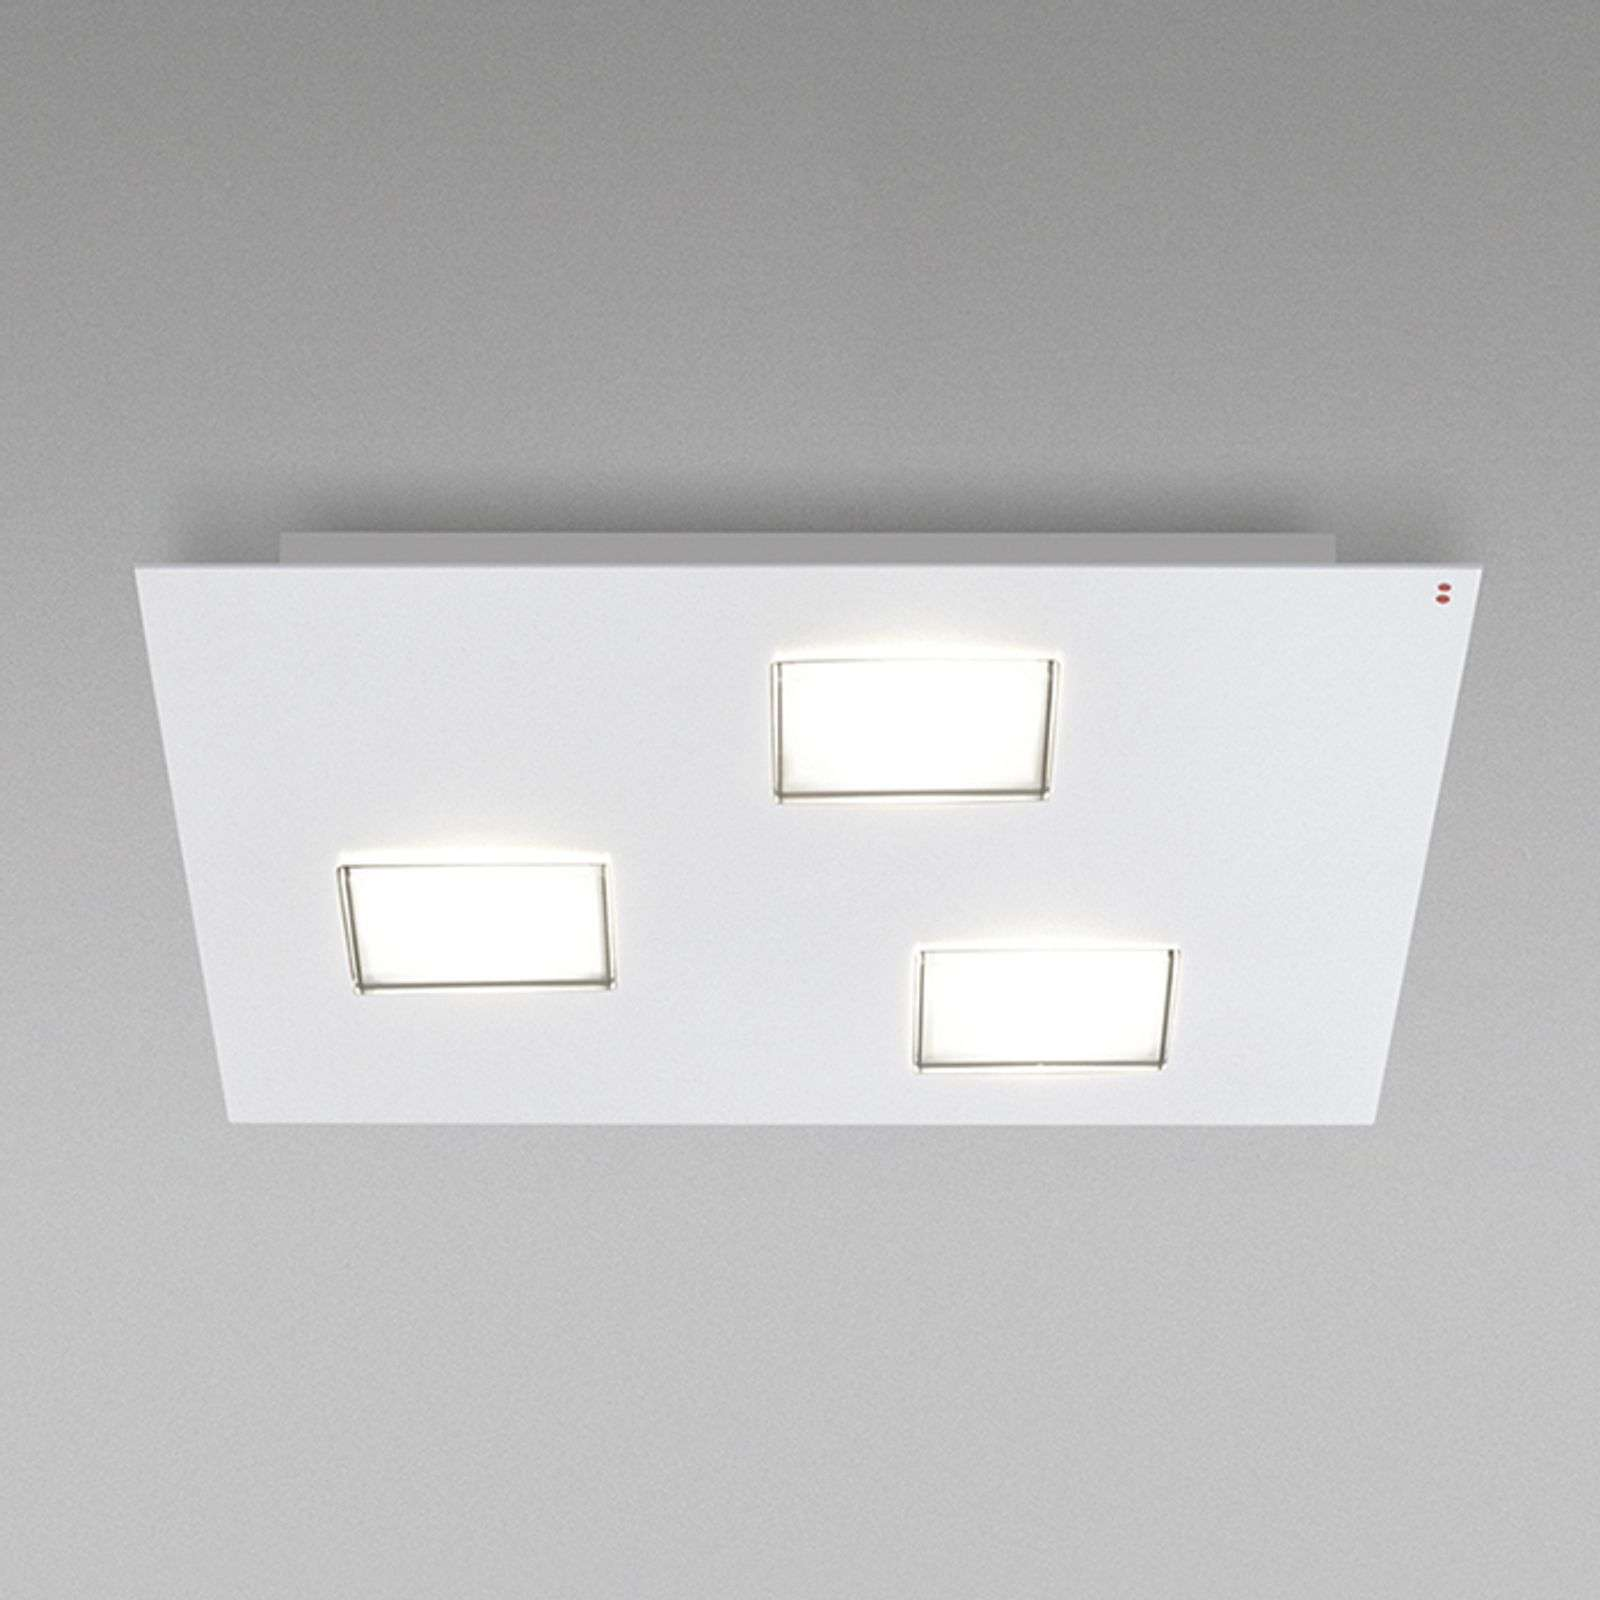 Quarter - LED plafondlamp in wit met 3 LED's